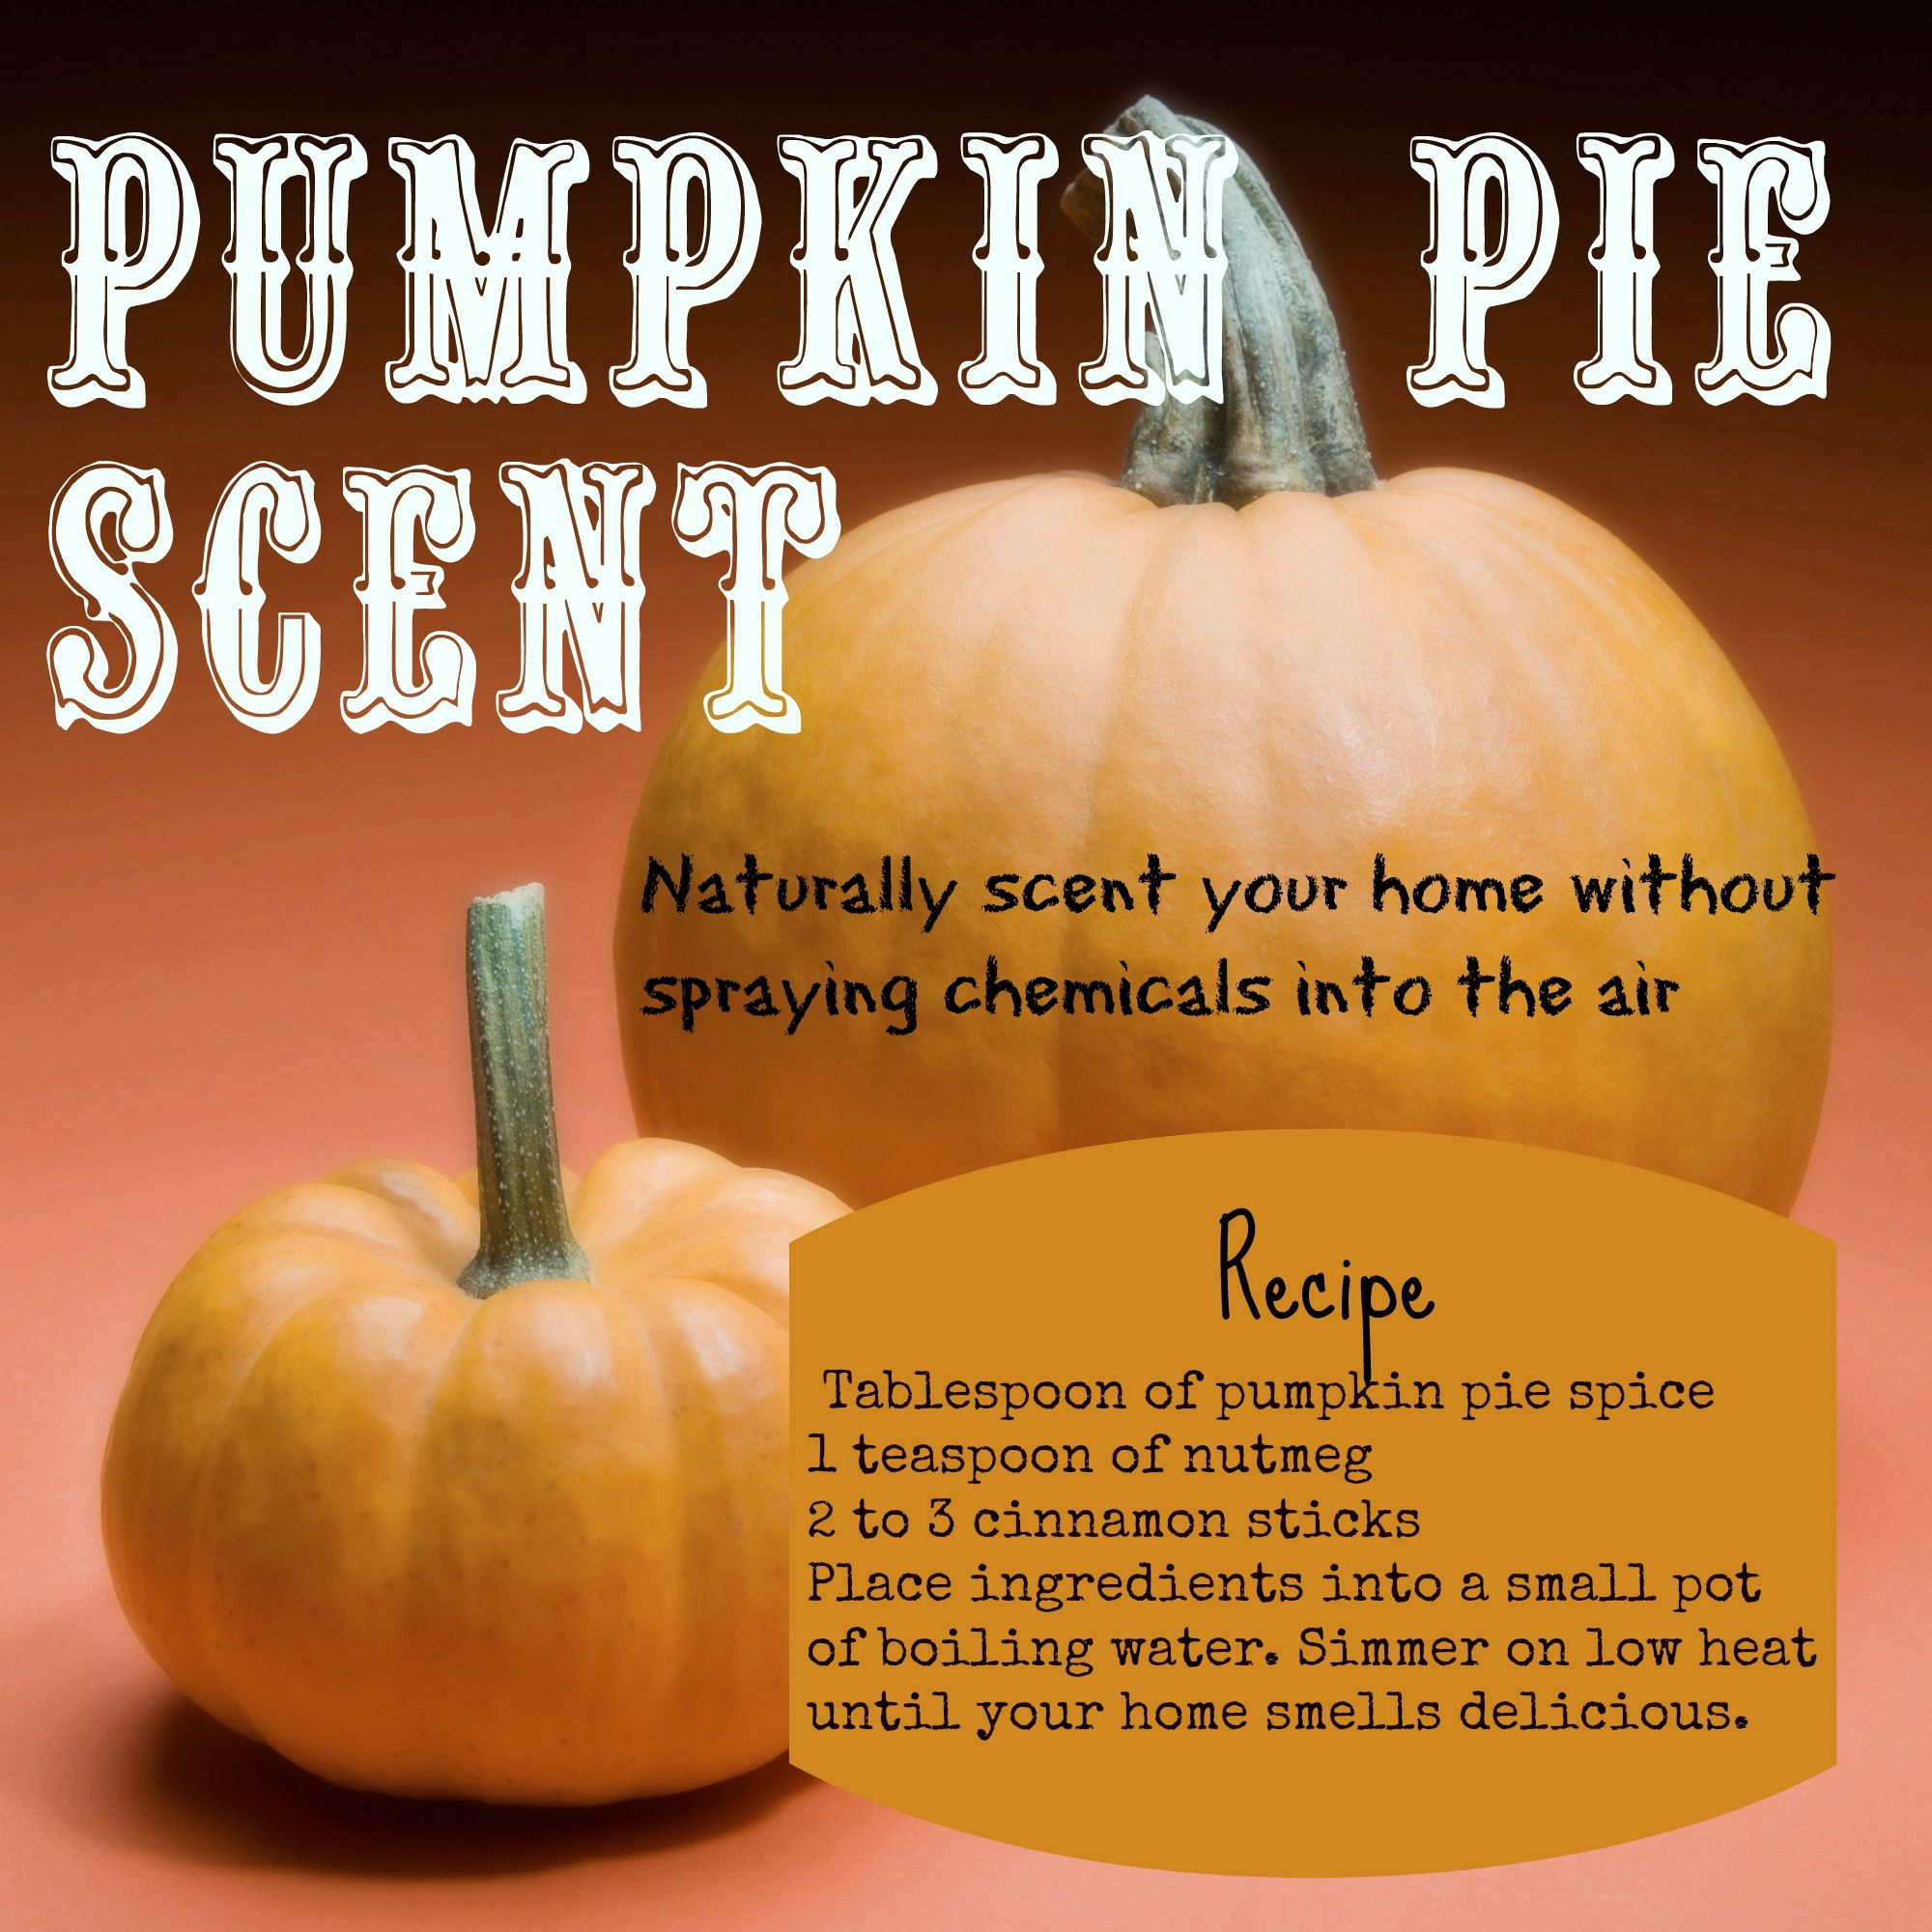 Scent your home with the smell of Pumpkin Pie without polluting ...